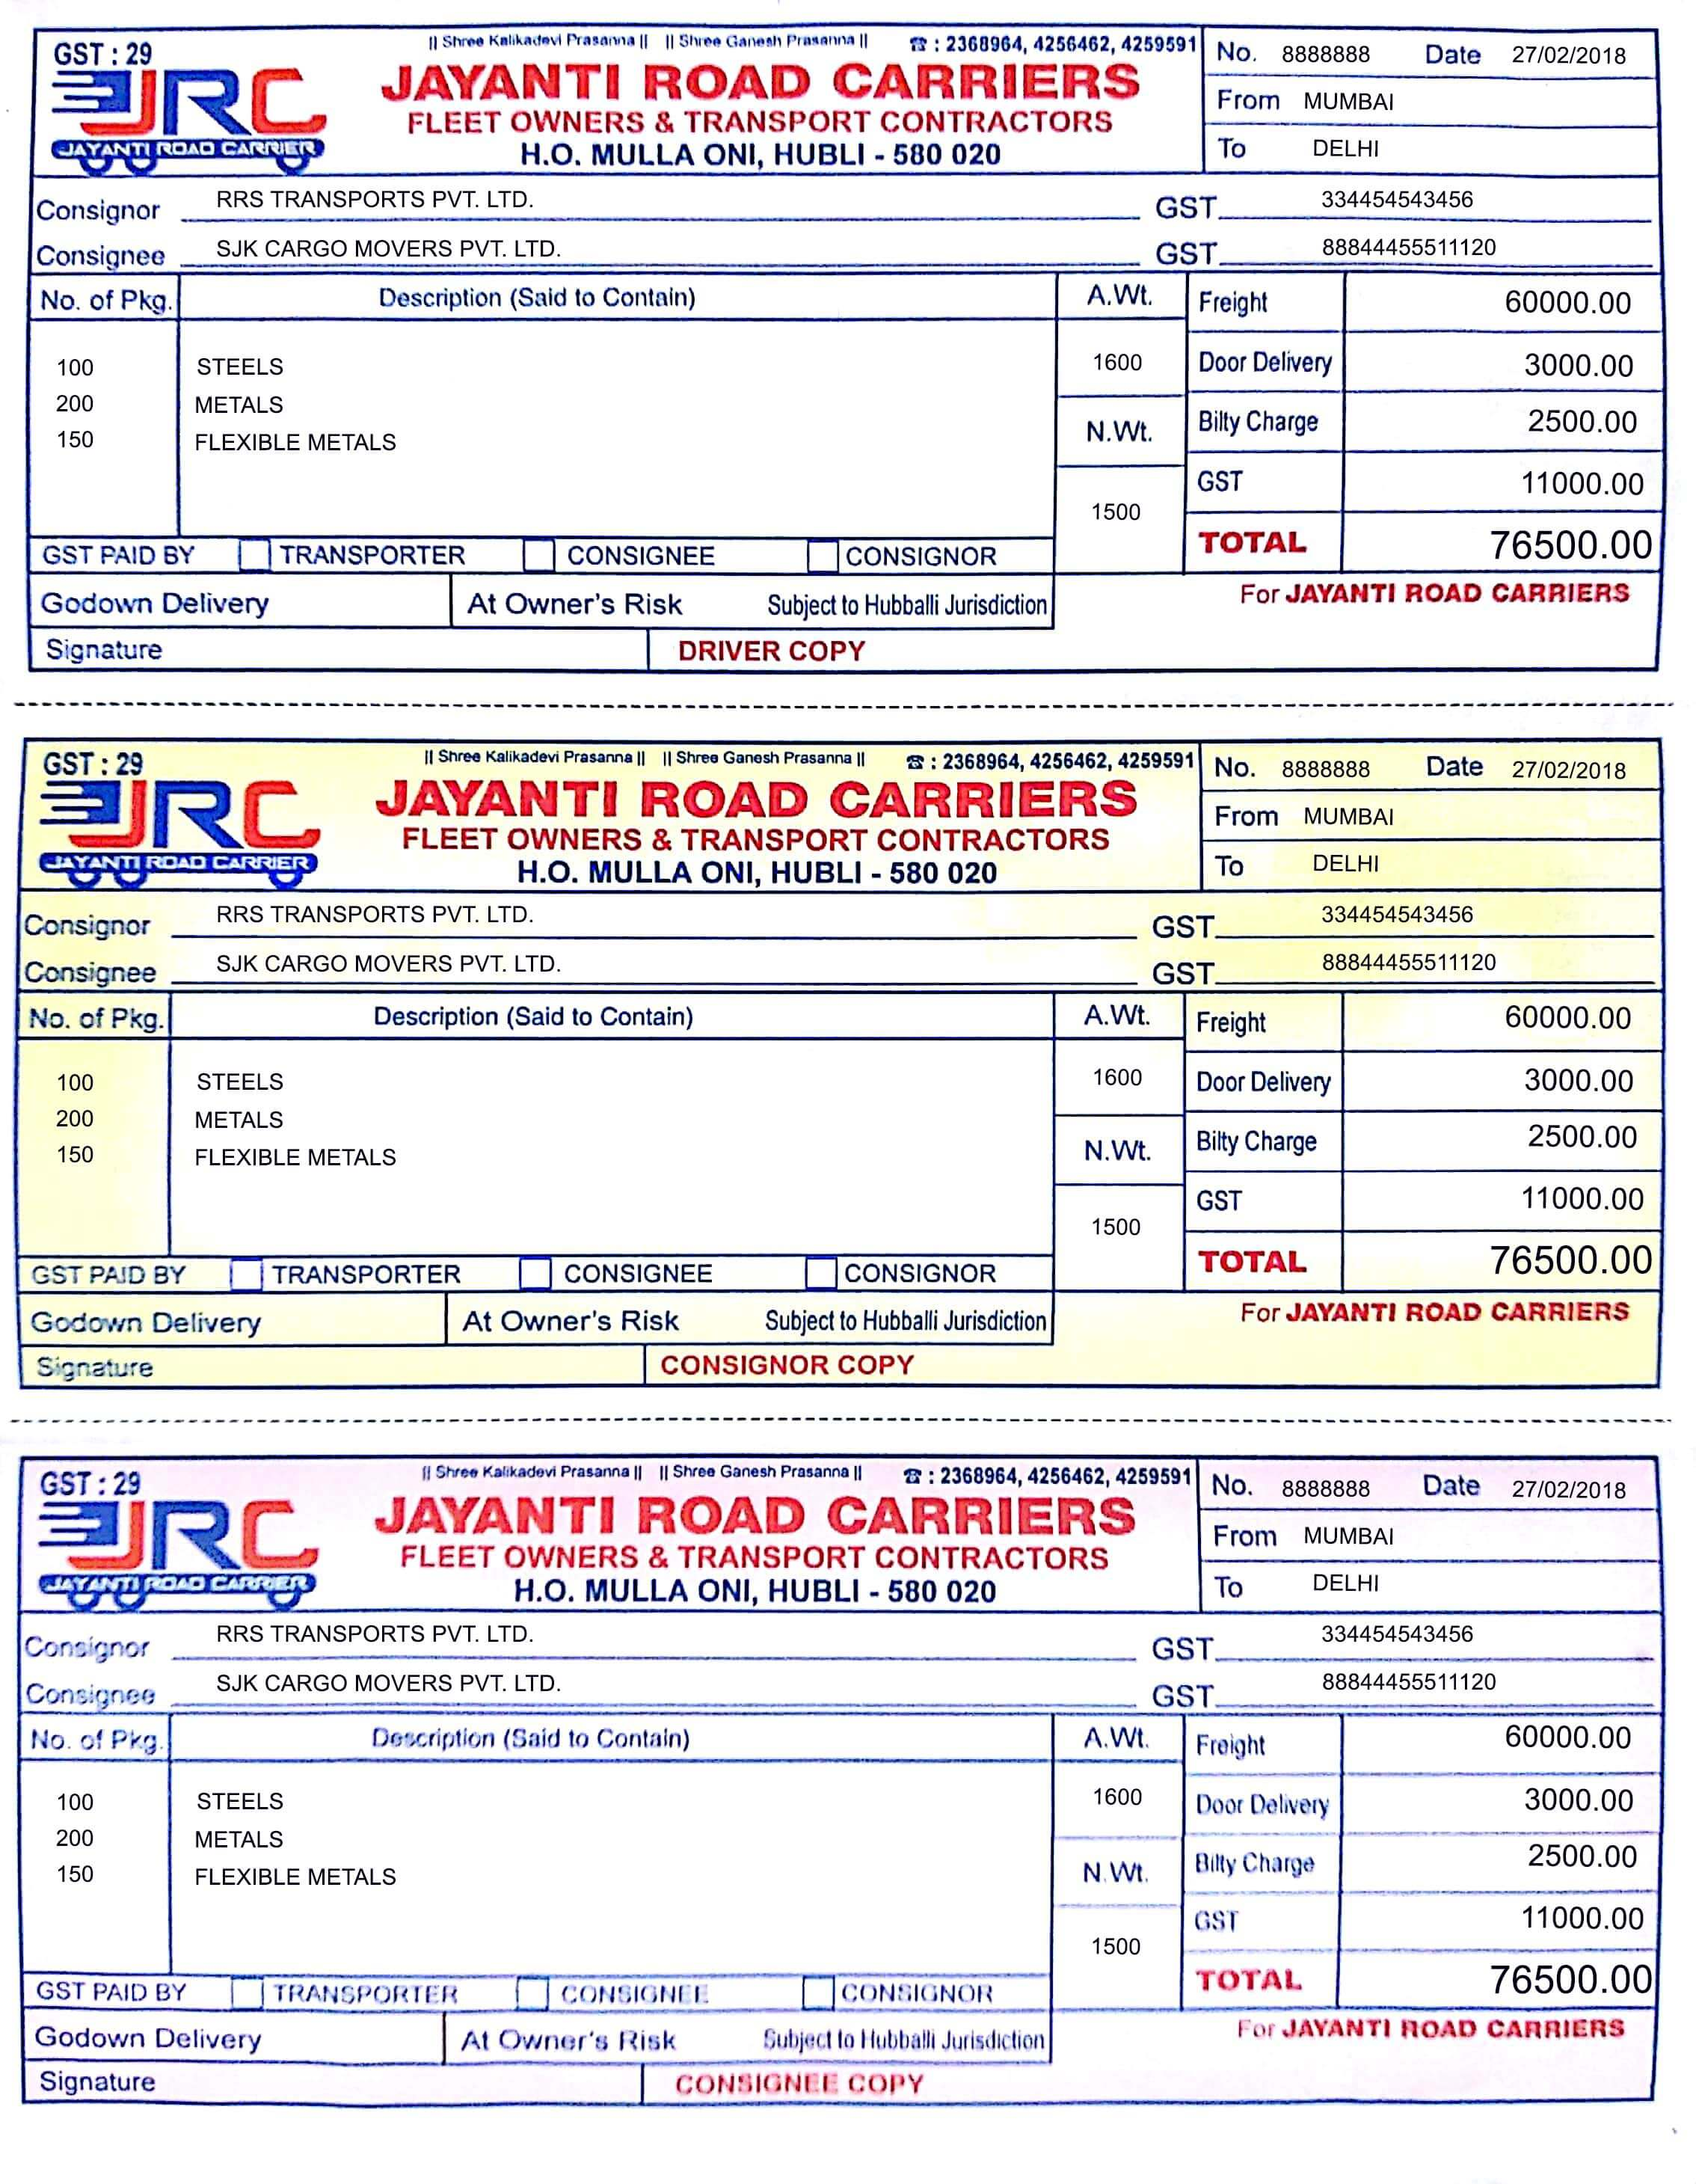 LR - Jayanti Road Carriers